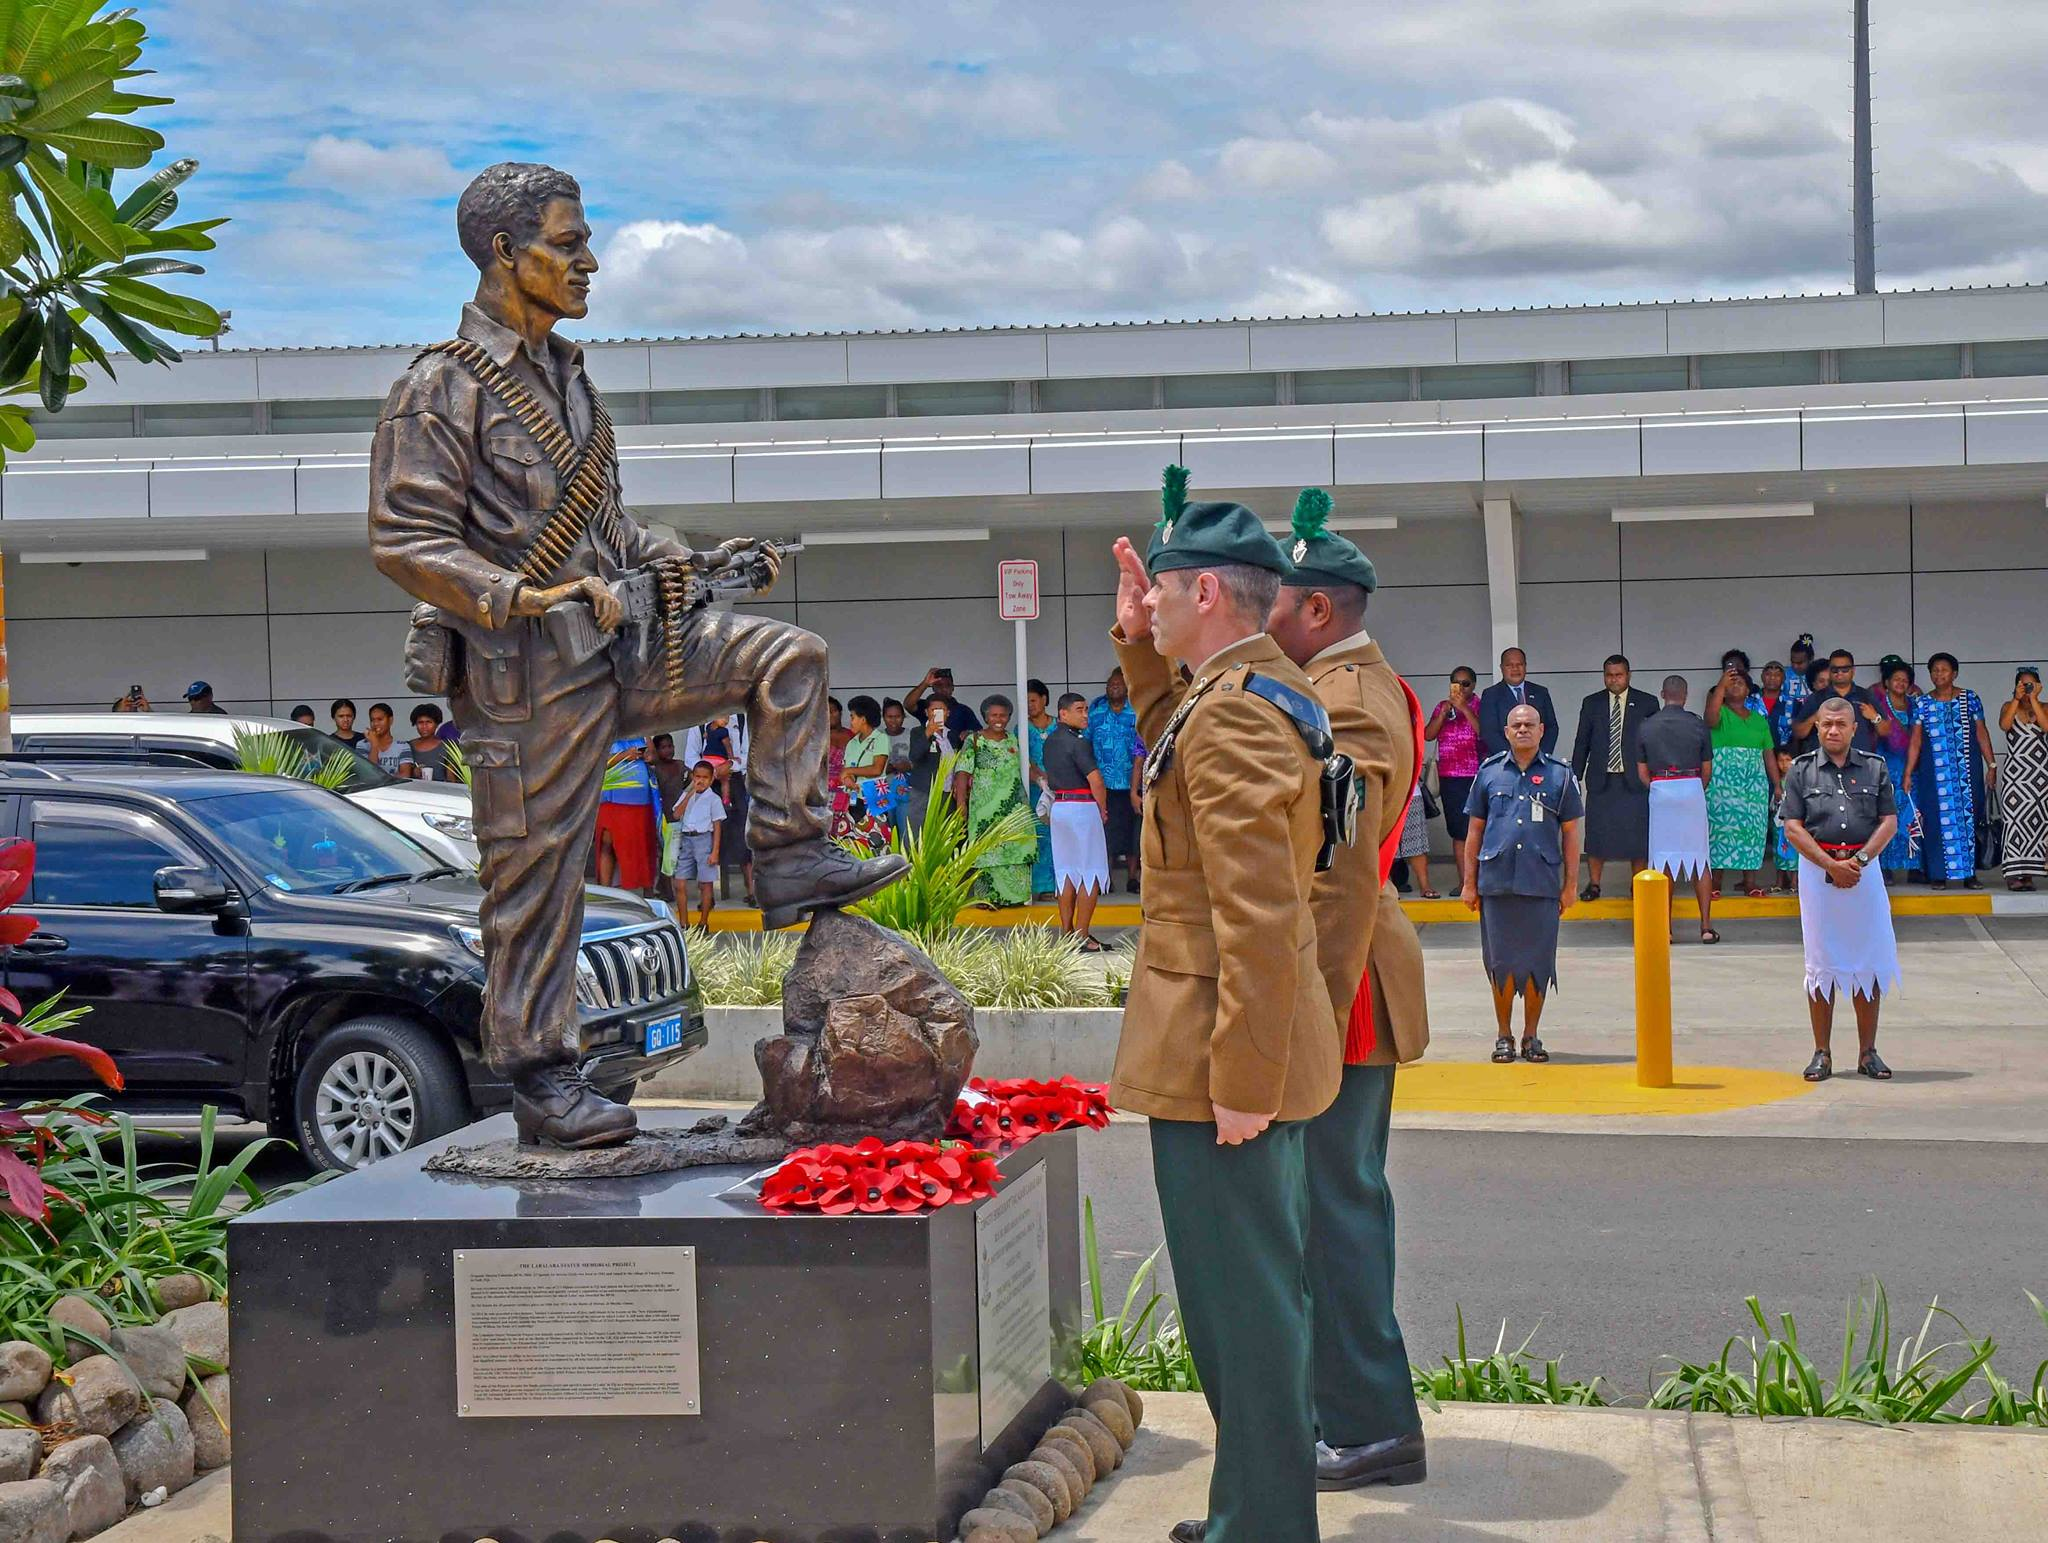 Two members of the Royal Ulster Rifles, Royal Irish Regiment and Special Air Service regiment of the British Army at the unveiling of the bronze statue of the late Sergeant Talaiasi Labalaba on October 25, 2018, at the Nadi International Airport.  Photo: DEPTFO News